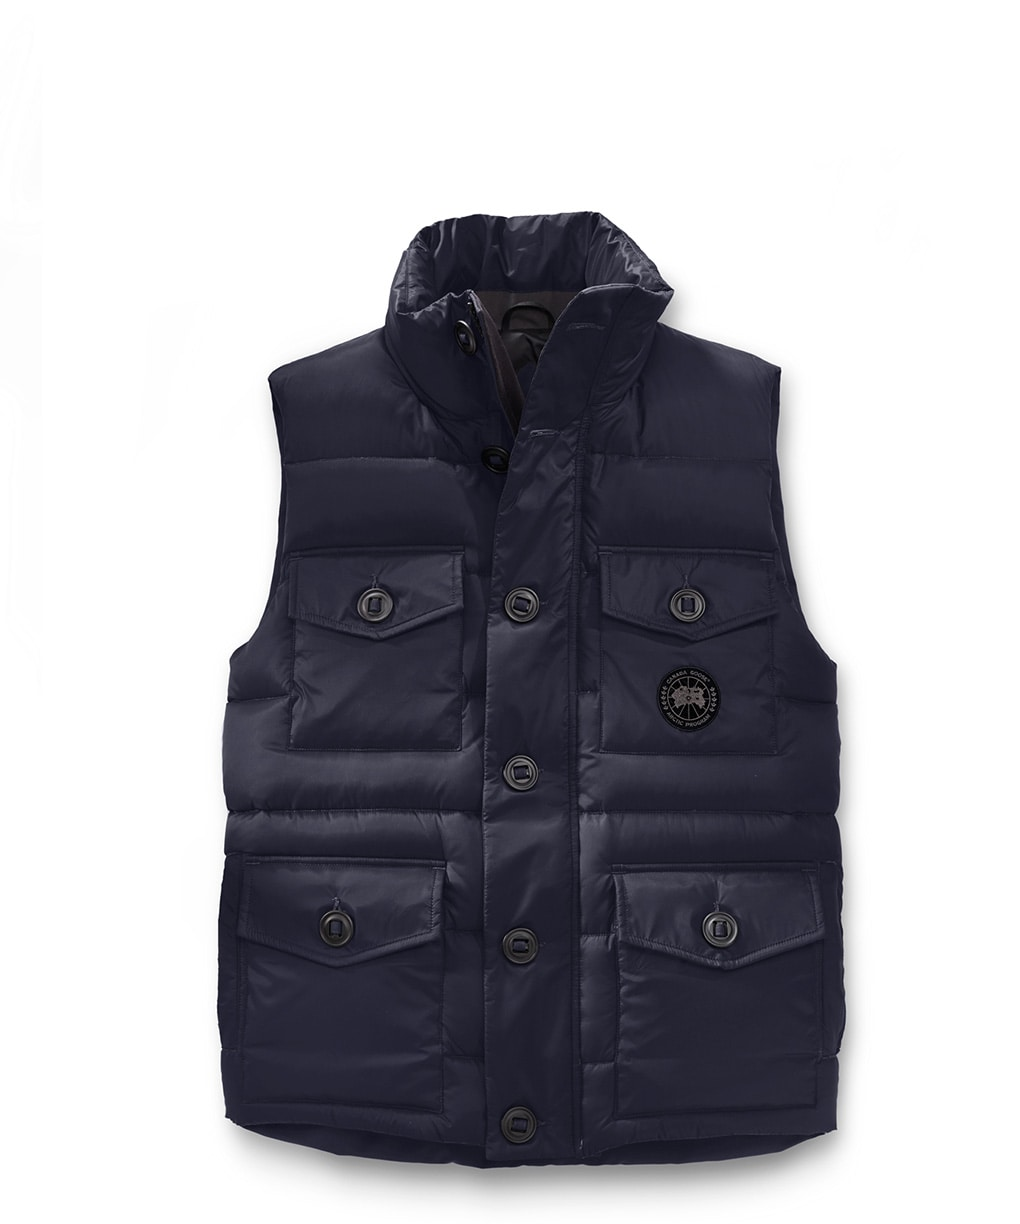 BENEDICT VEST BLACK LABEL